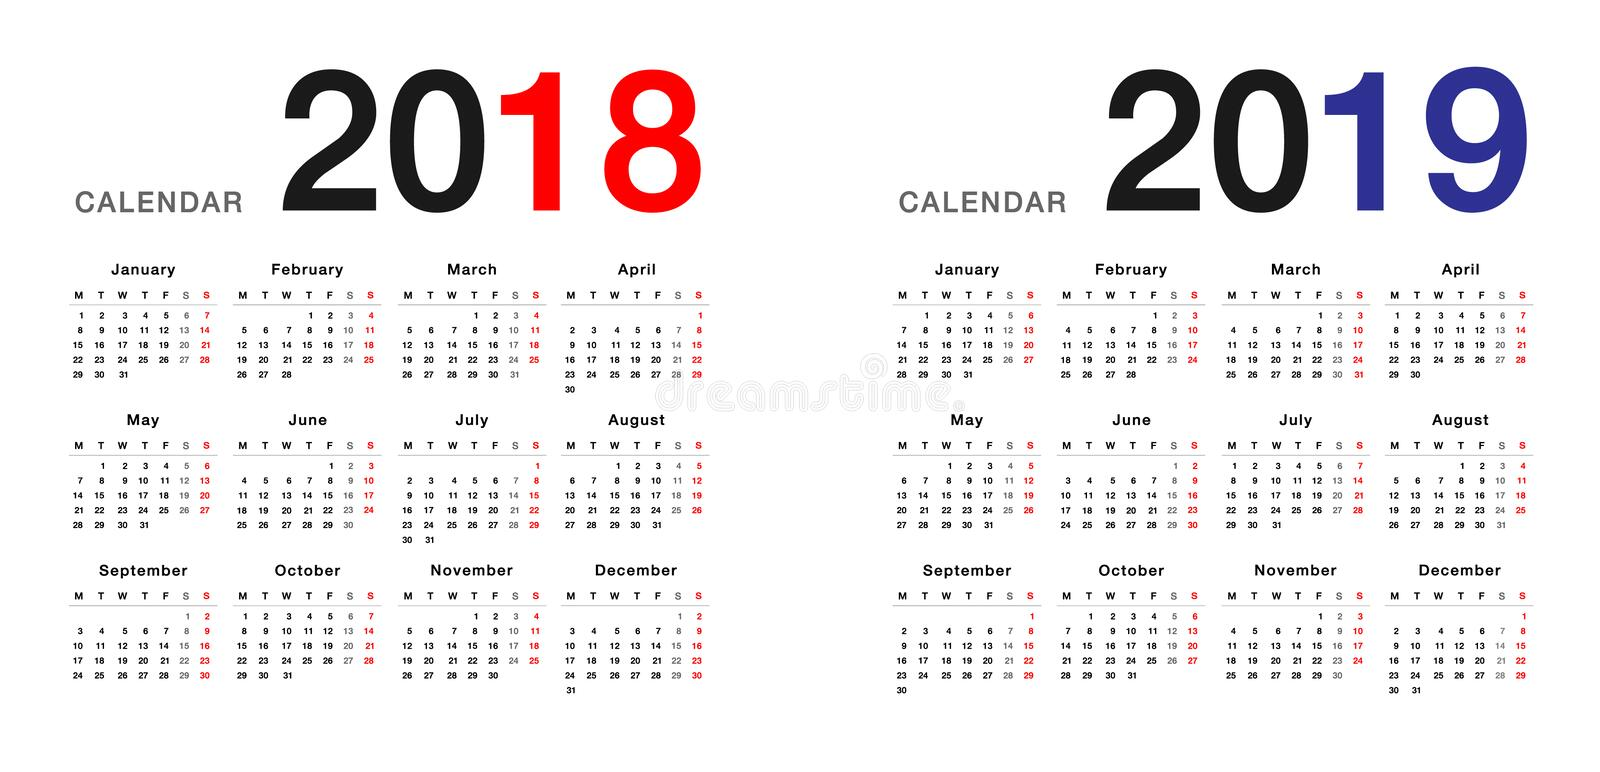 Year 2018 and Year 2019 calendar design template, simple and clean design. stock illustration